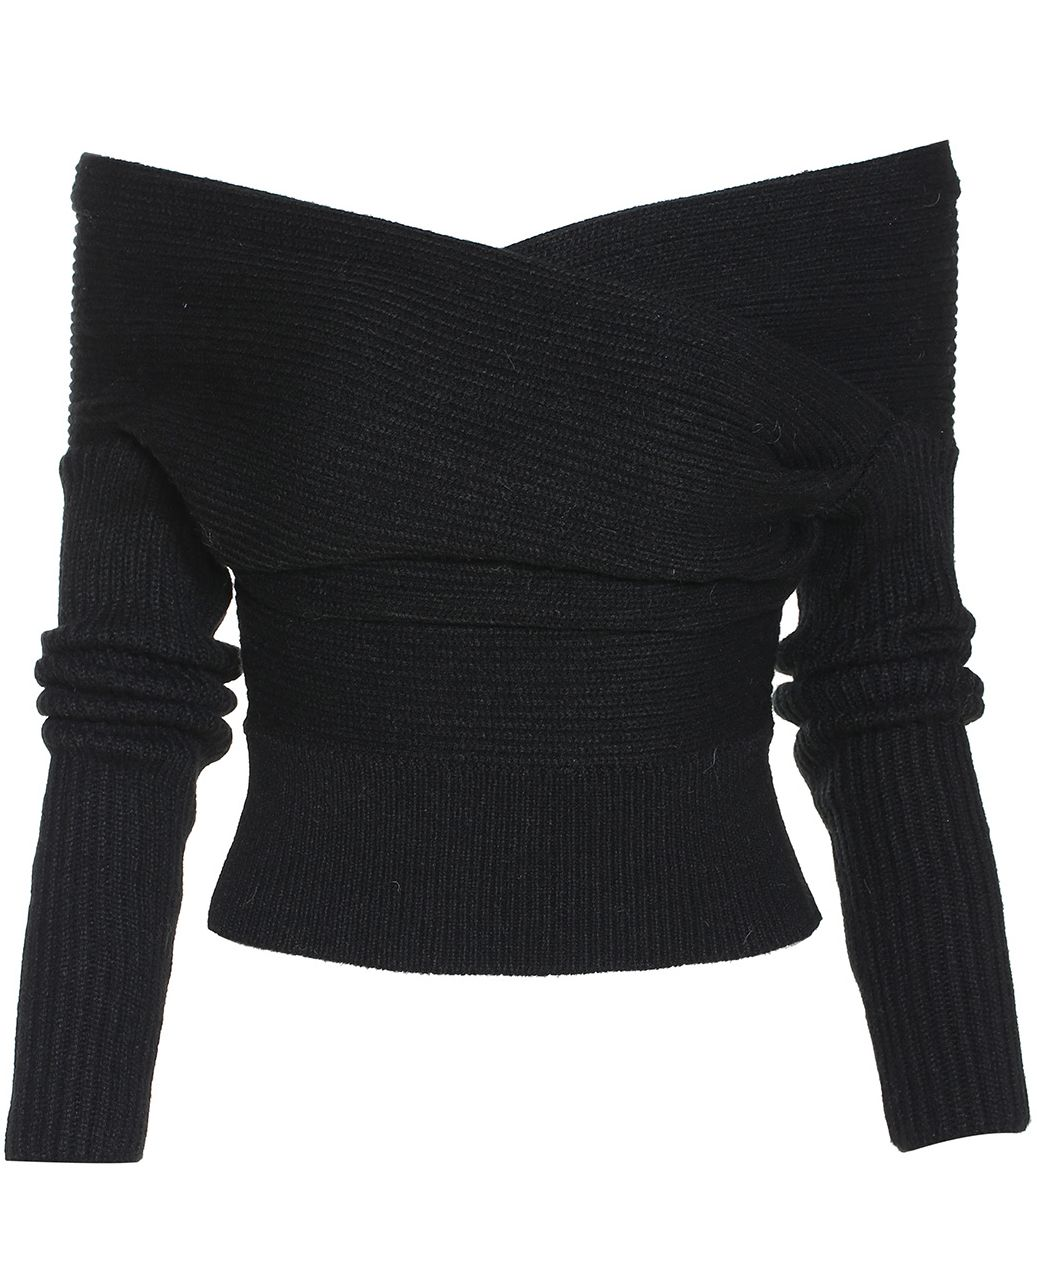 Boat Neck Wrap Front Black Sweater | Clothing | Pinterest | Boat ...